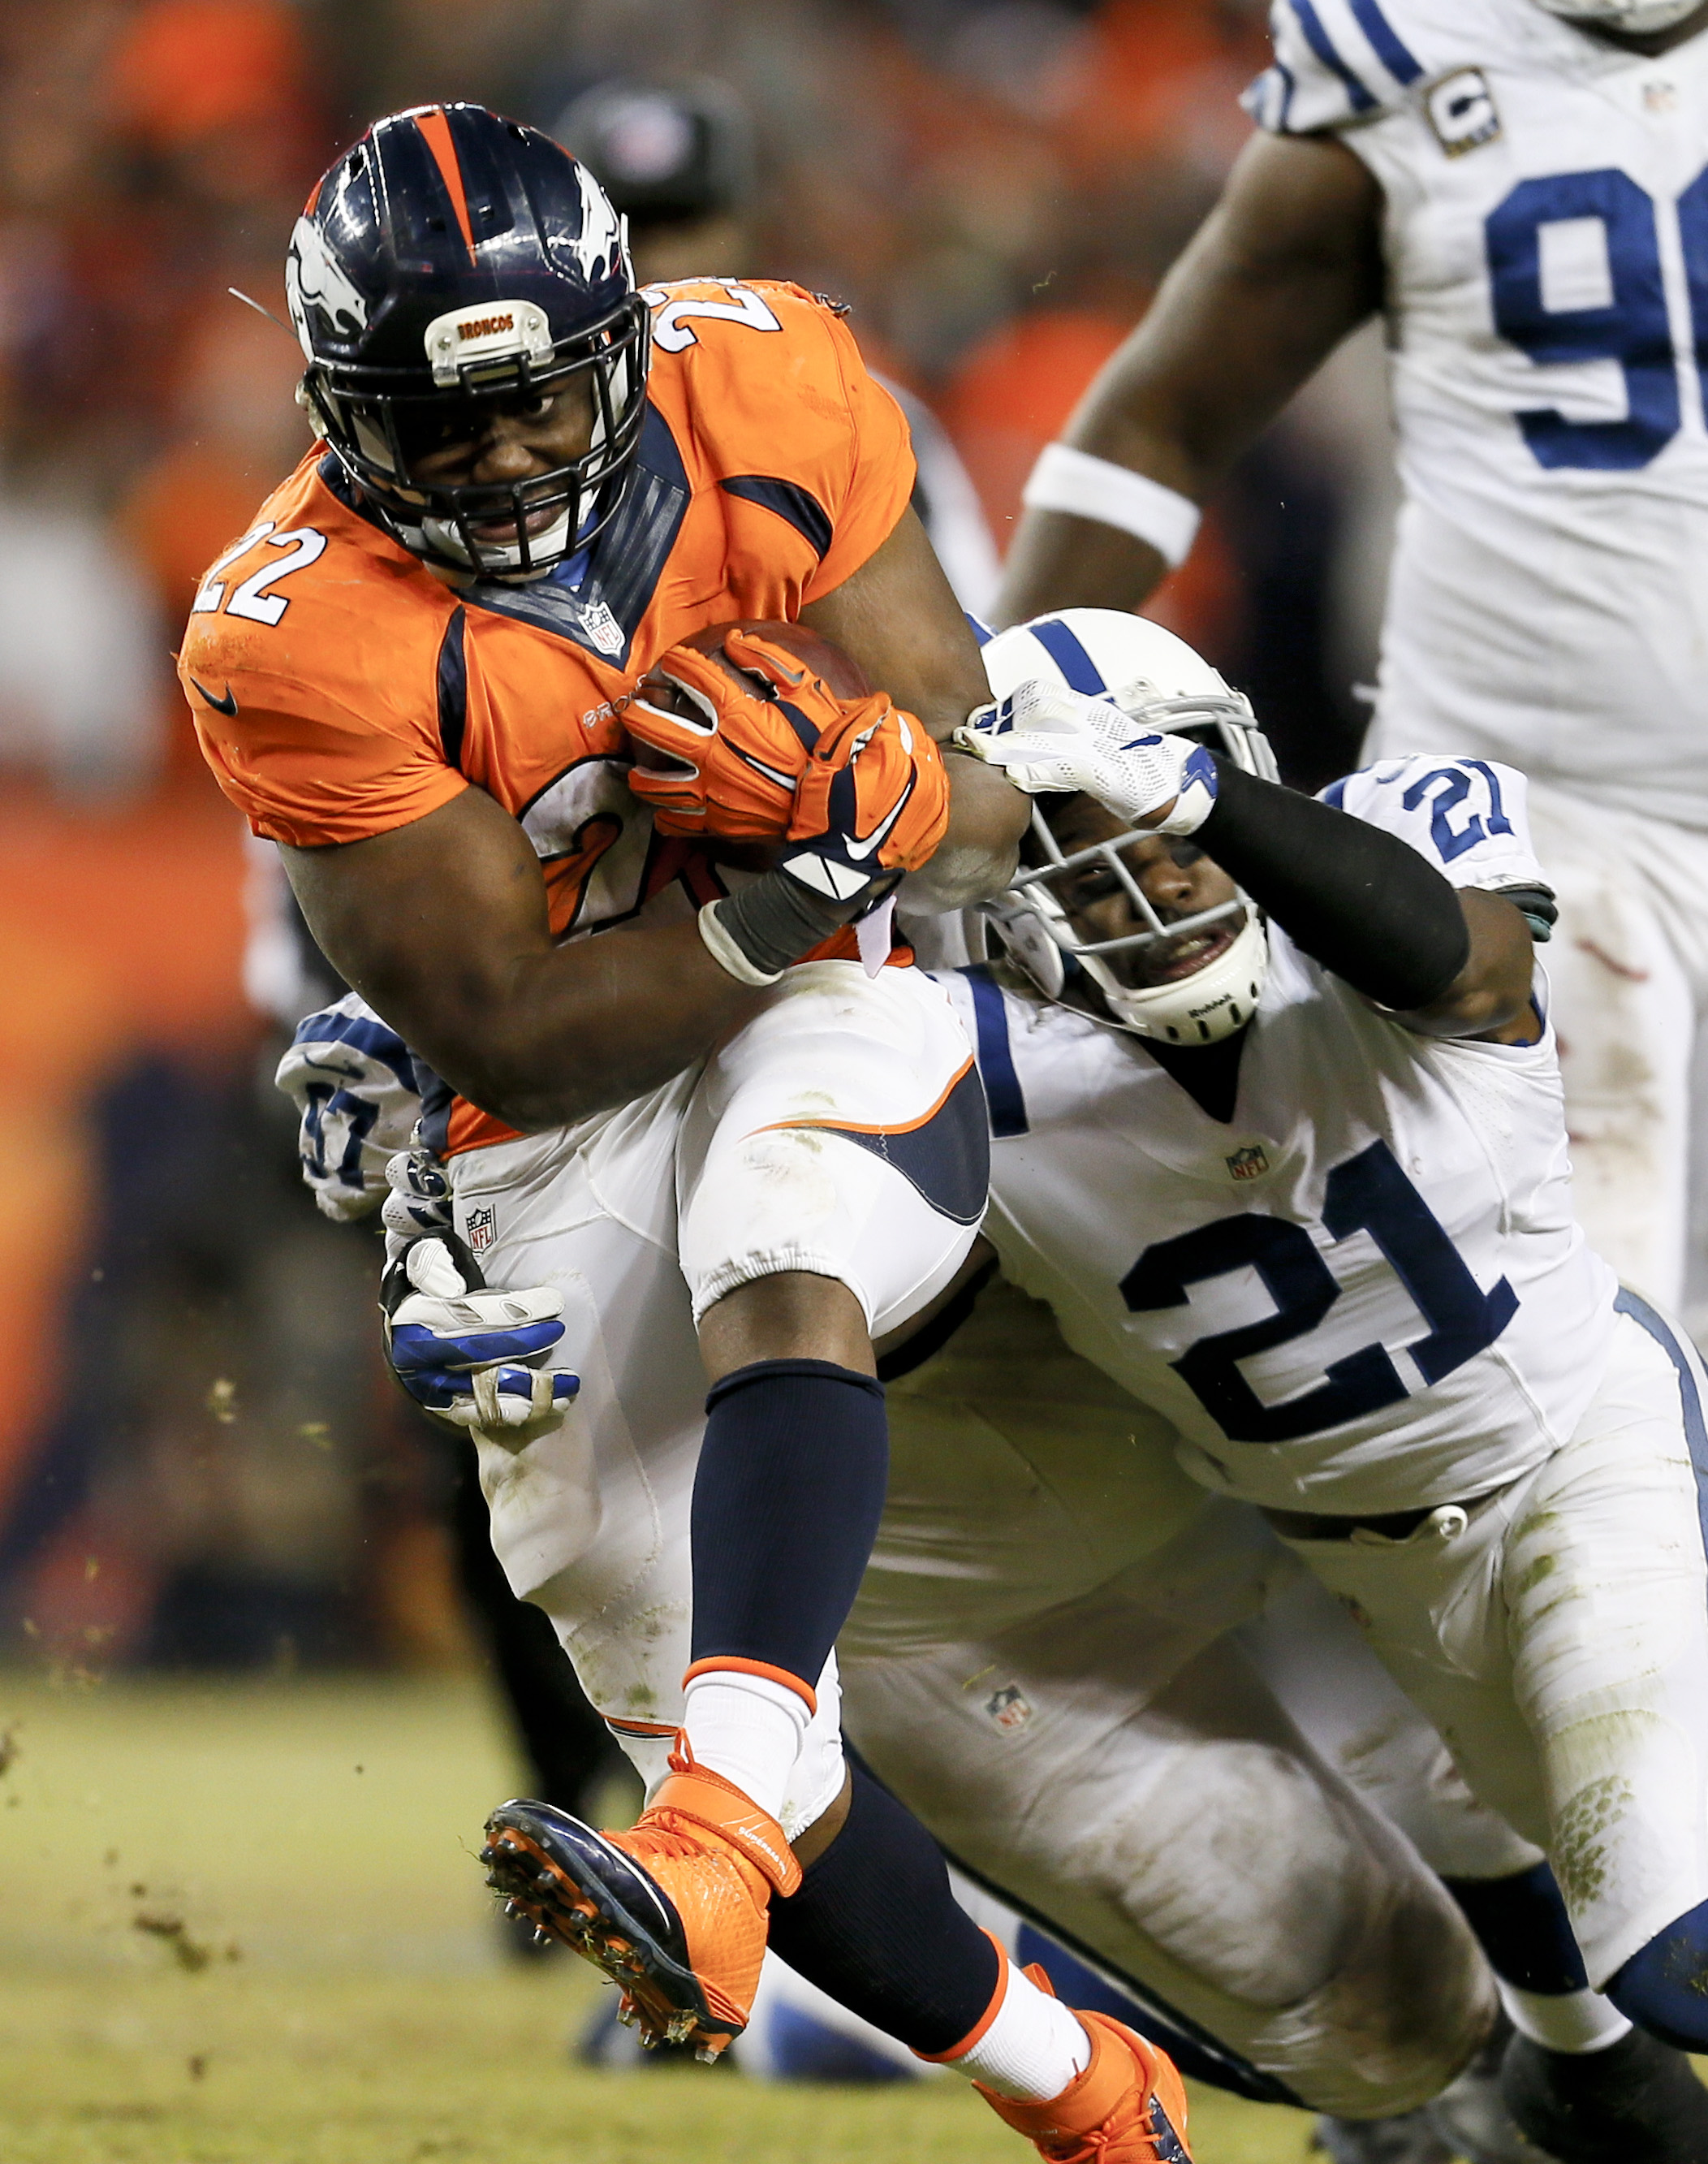 FILE - In this Jan. 11, 2015 file photo, Denver Broncos running back C.J. Anderson, left, converts a fourth down run for a first down as Indianapolis Colts cornerback Vontae Davis tries to tackle him from behind during the second half of an NFL divisional